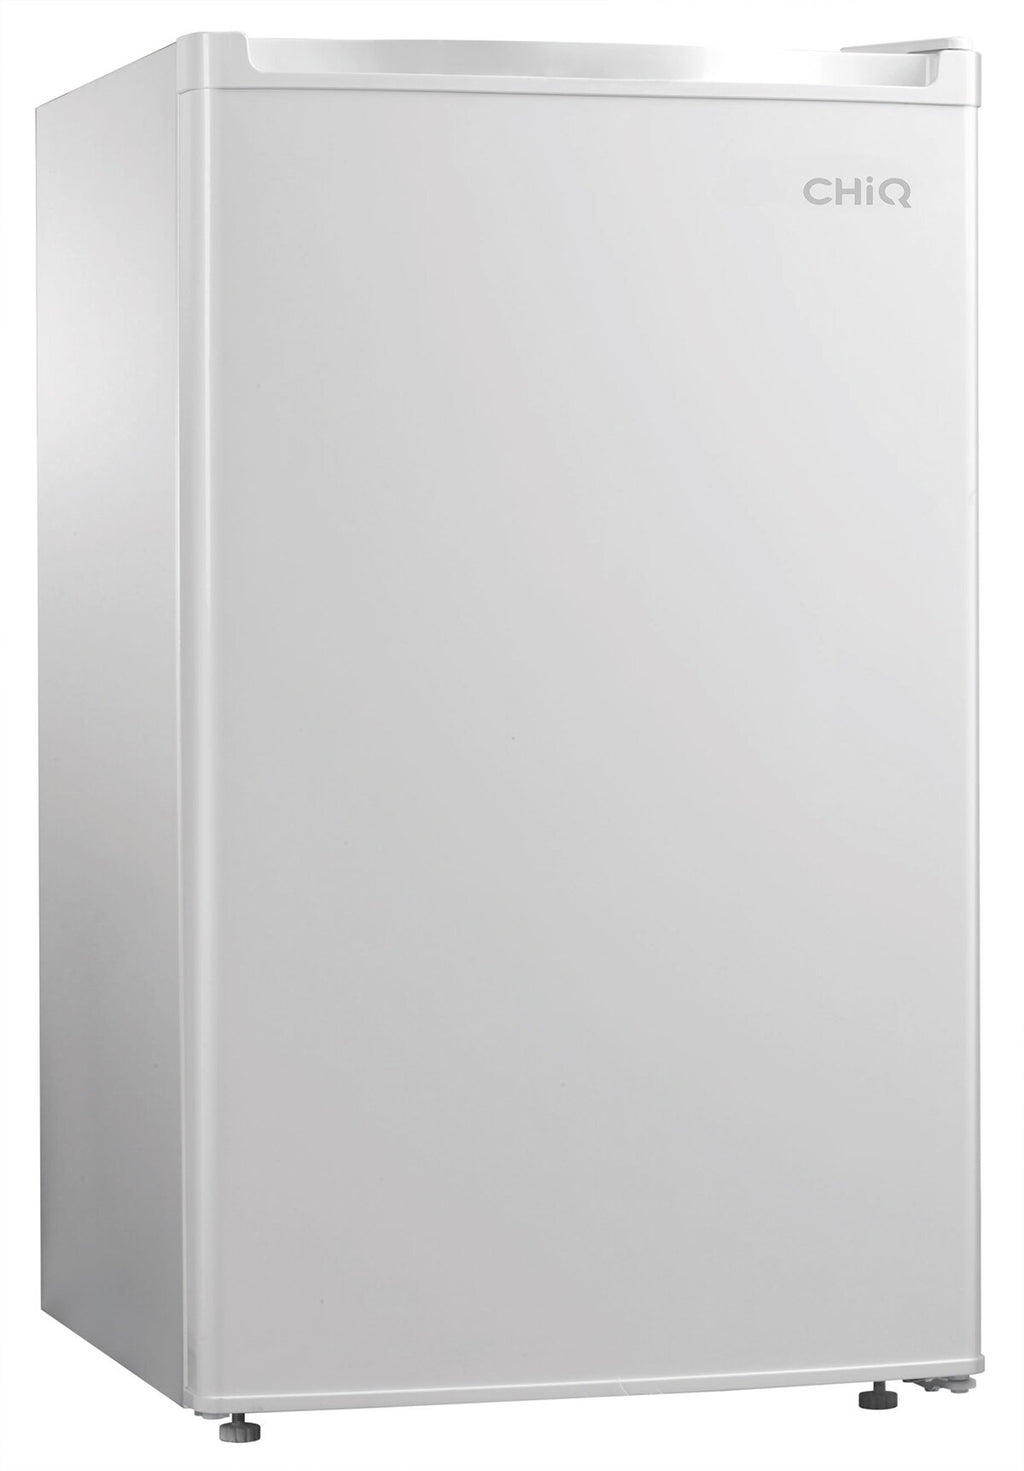 Chiq 126 L Bar Fridge (Brand New)